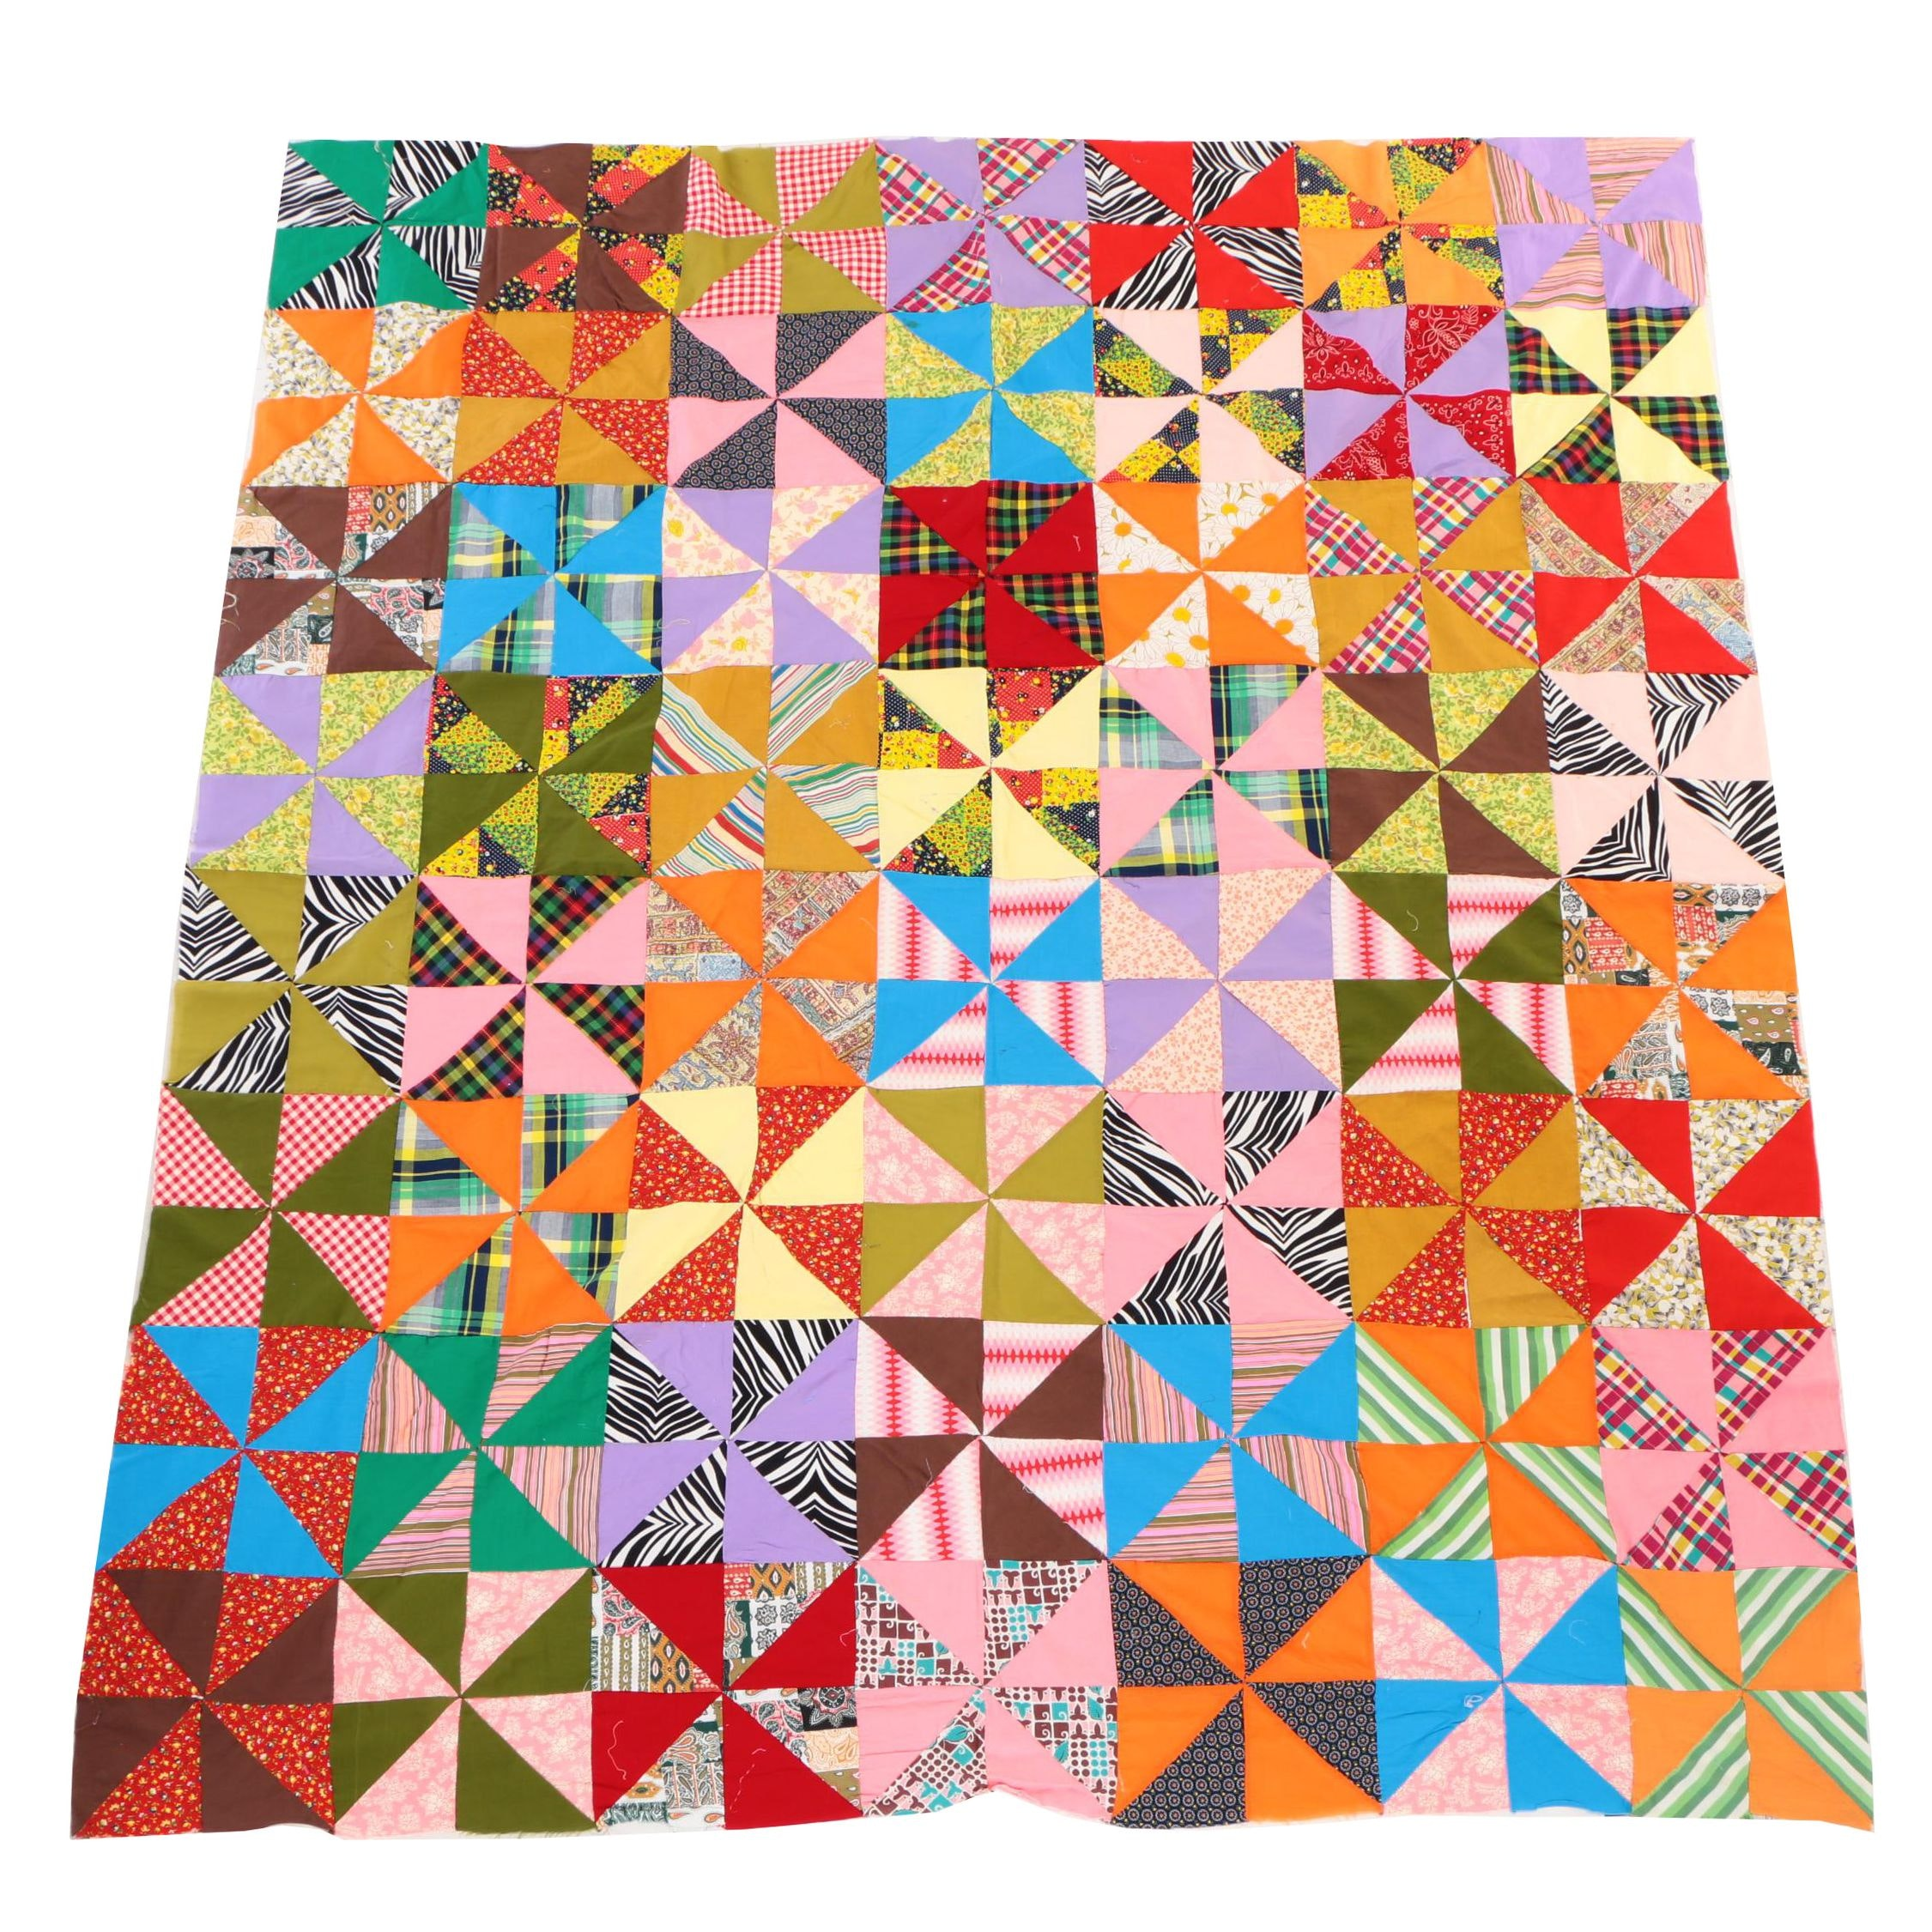 Handcrafted Half-Square Triangle Pattern Quilt Pieces